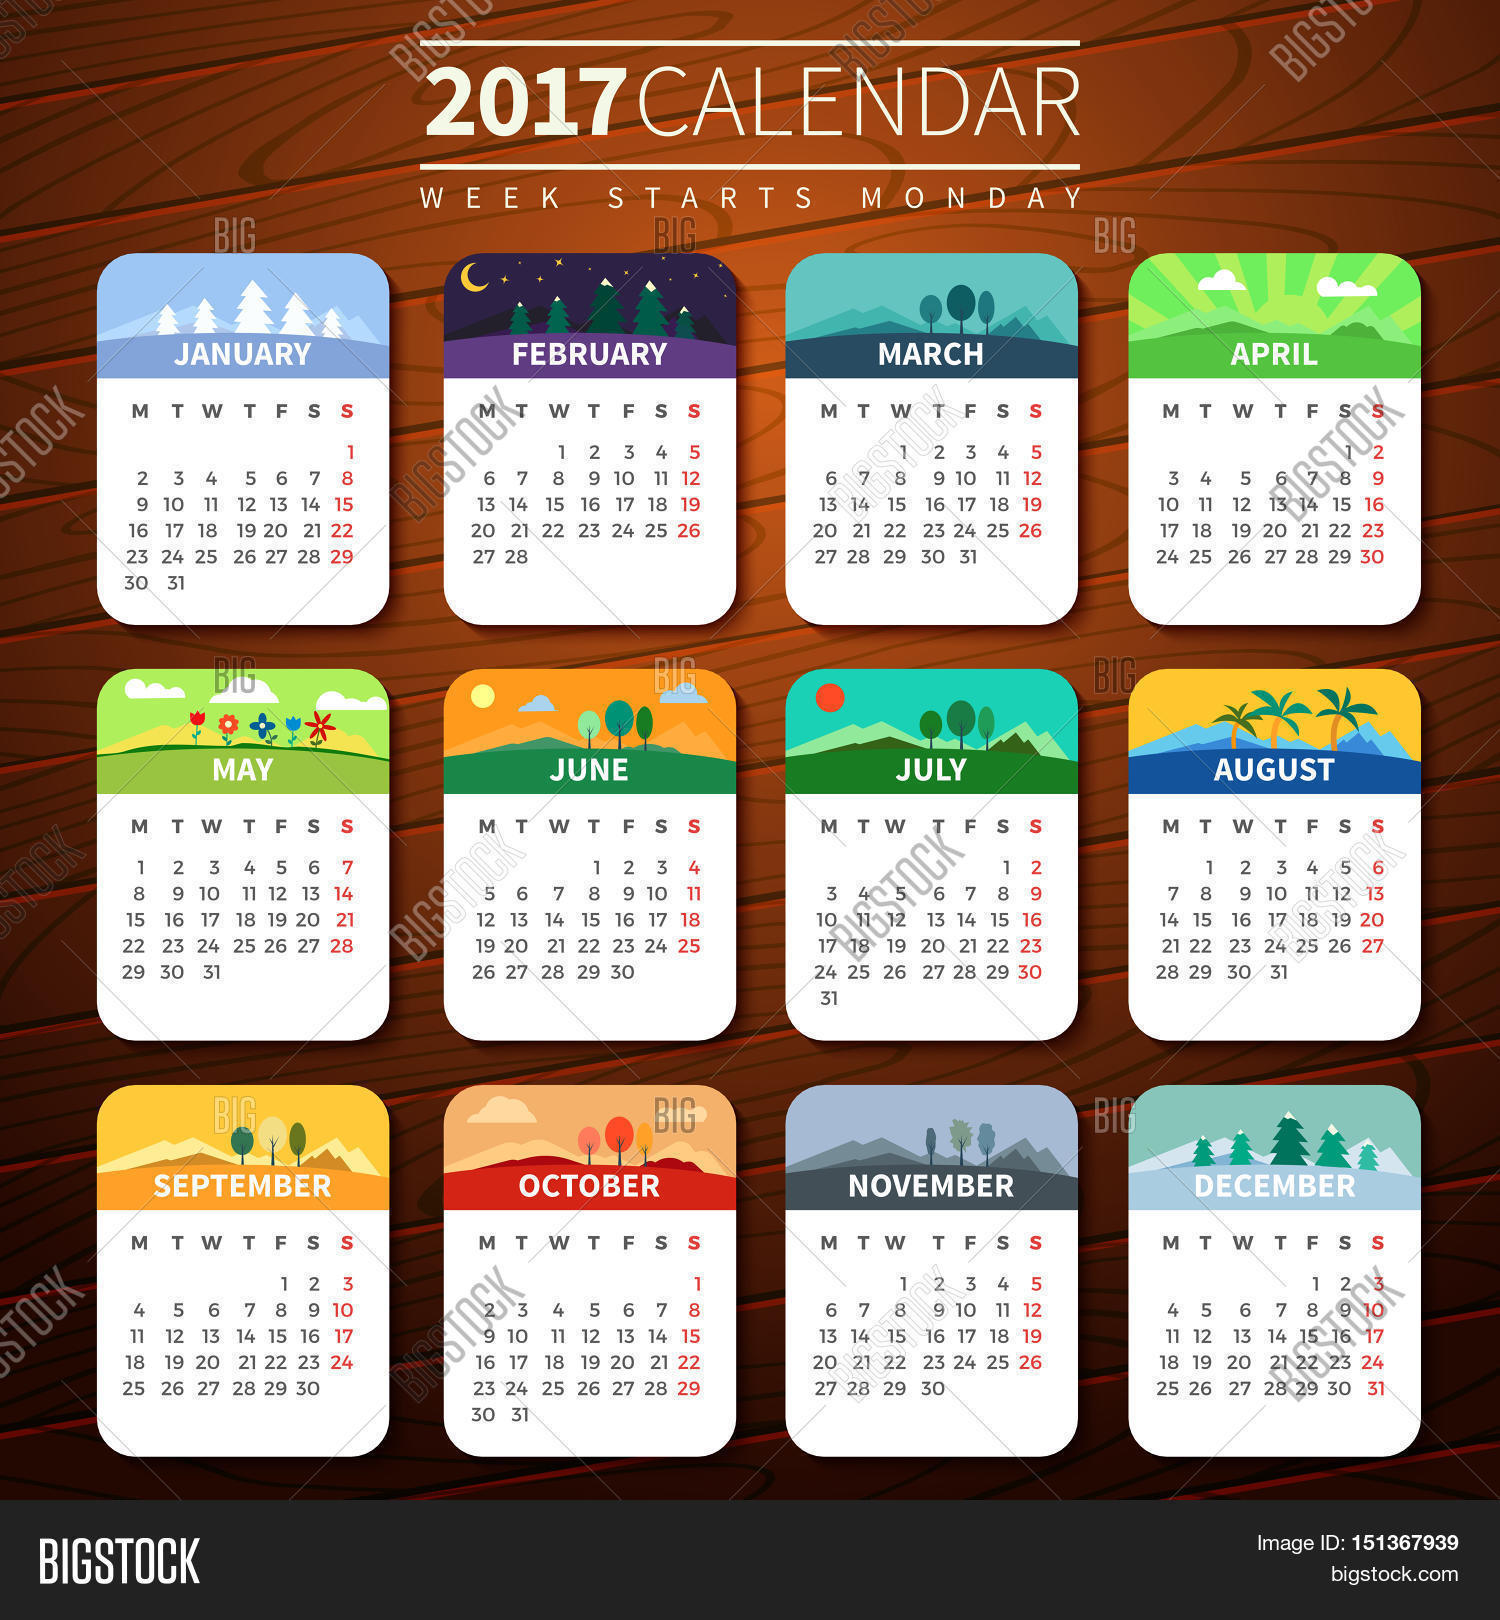 how to change background on one calendar